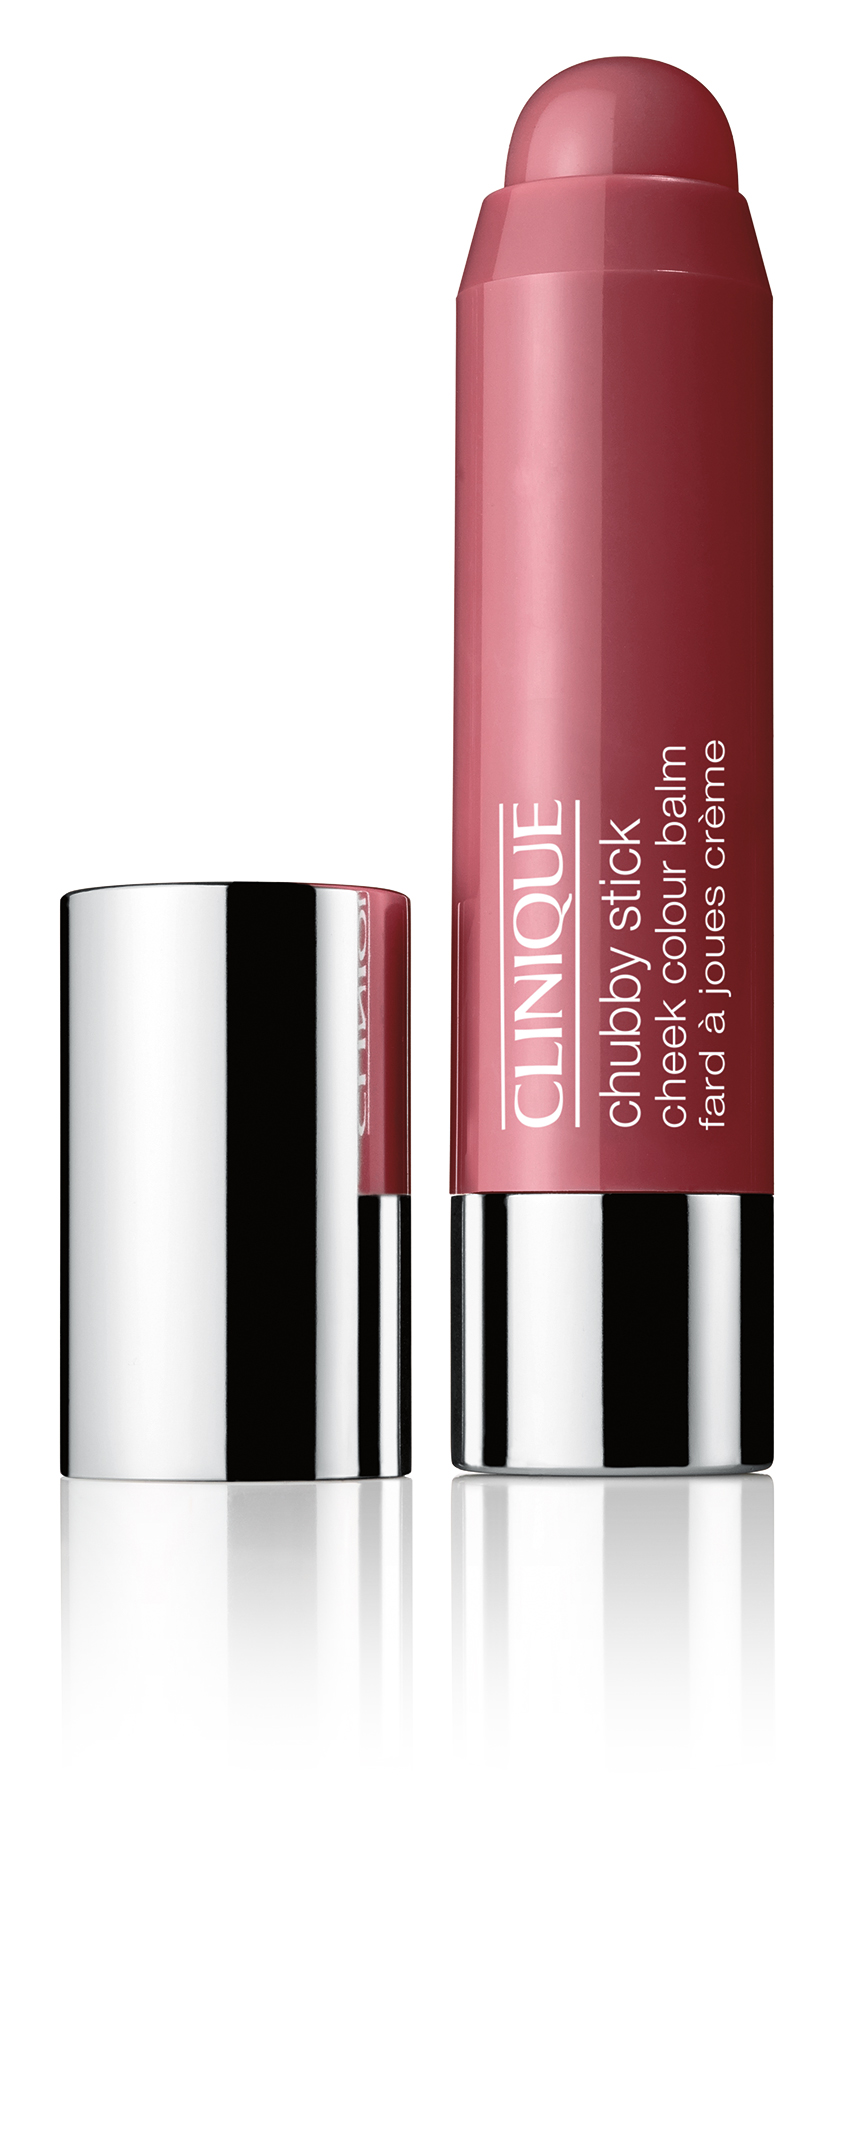 Clinique Chubby Cheek Colour Balm Plumped Up Peony INTL ICON.jpg